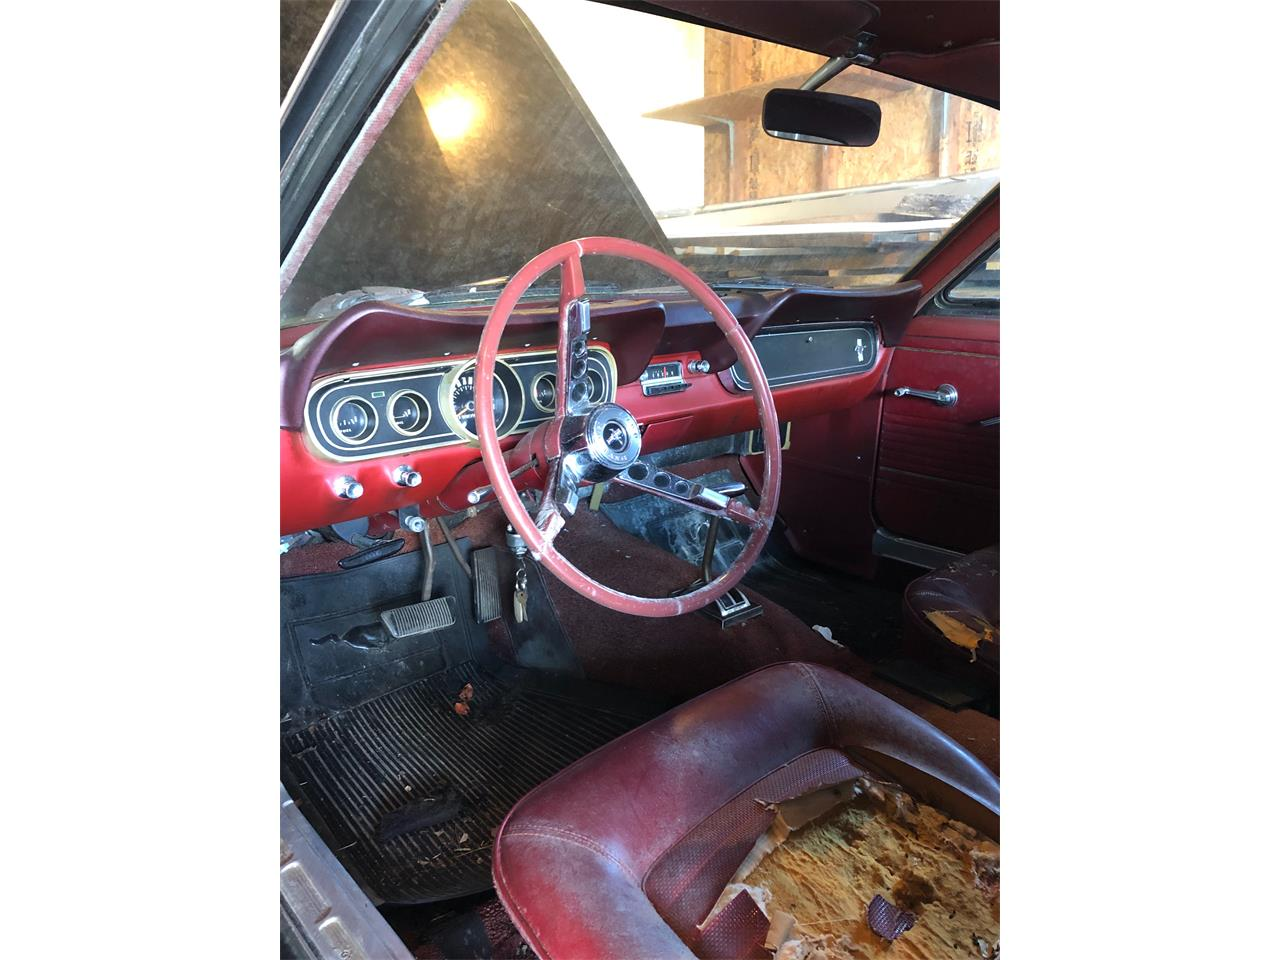 Large Picture of 1966 Ford Mustang located in Kentucky Offered by a Private Seller - Q0HY